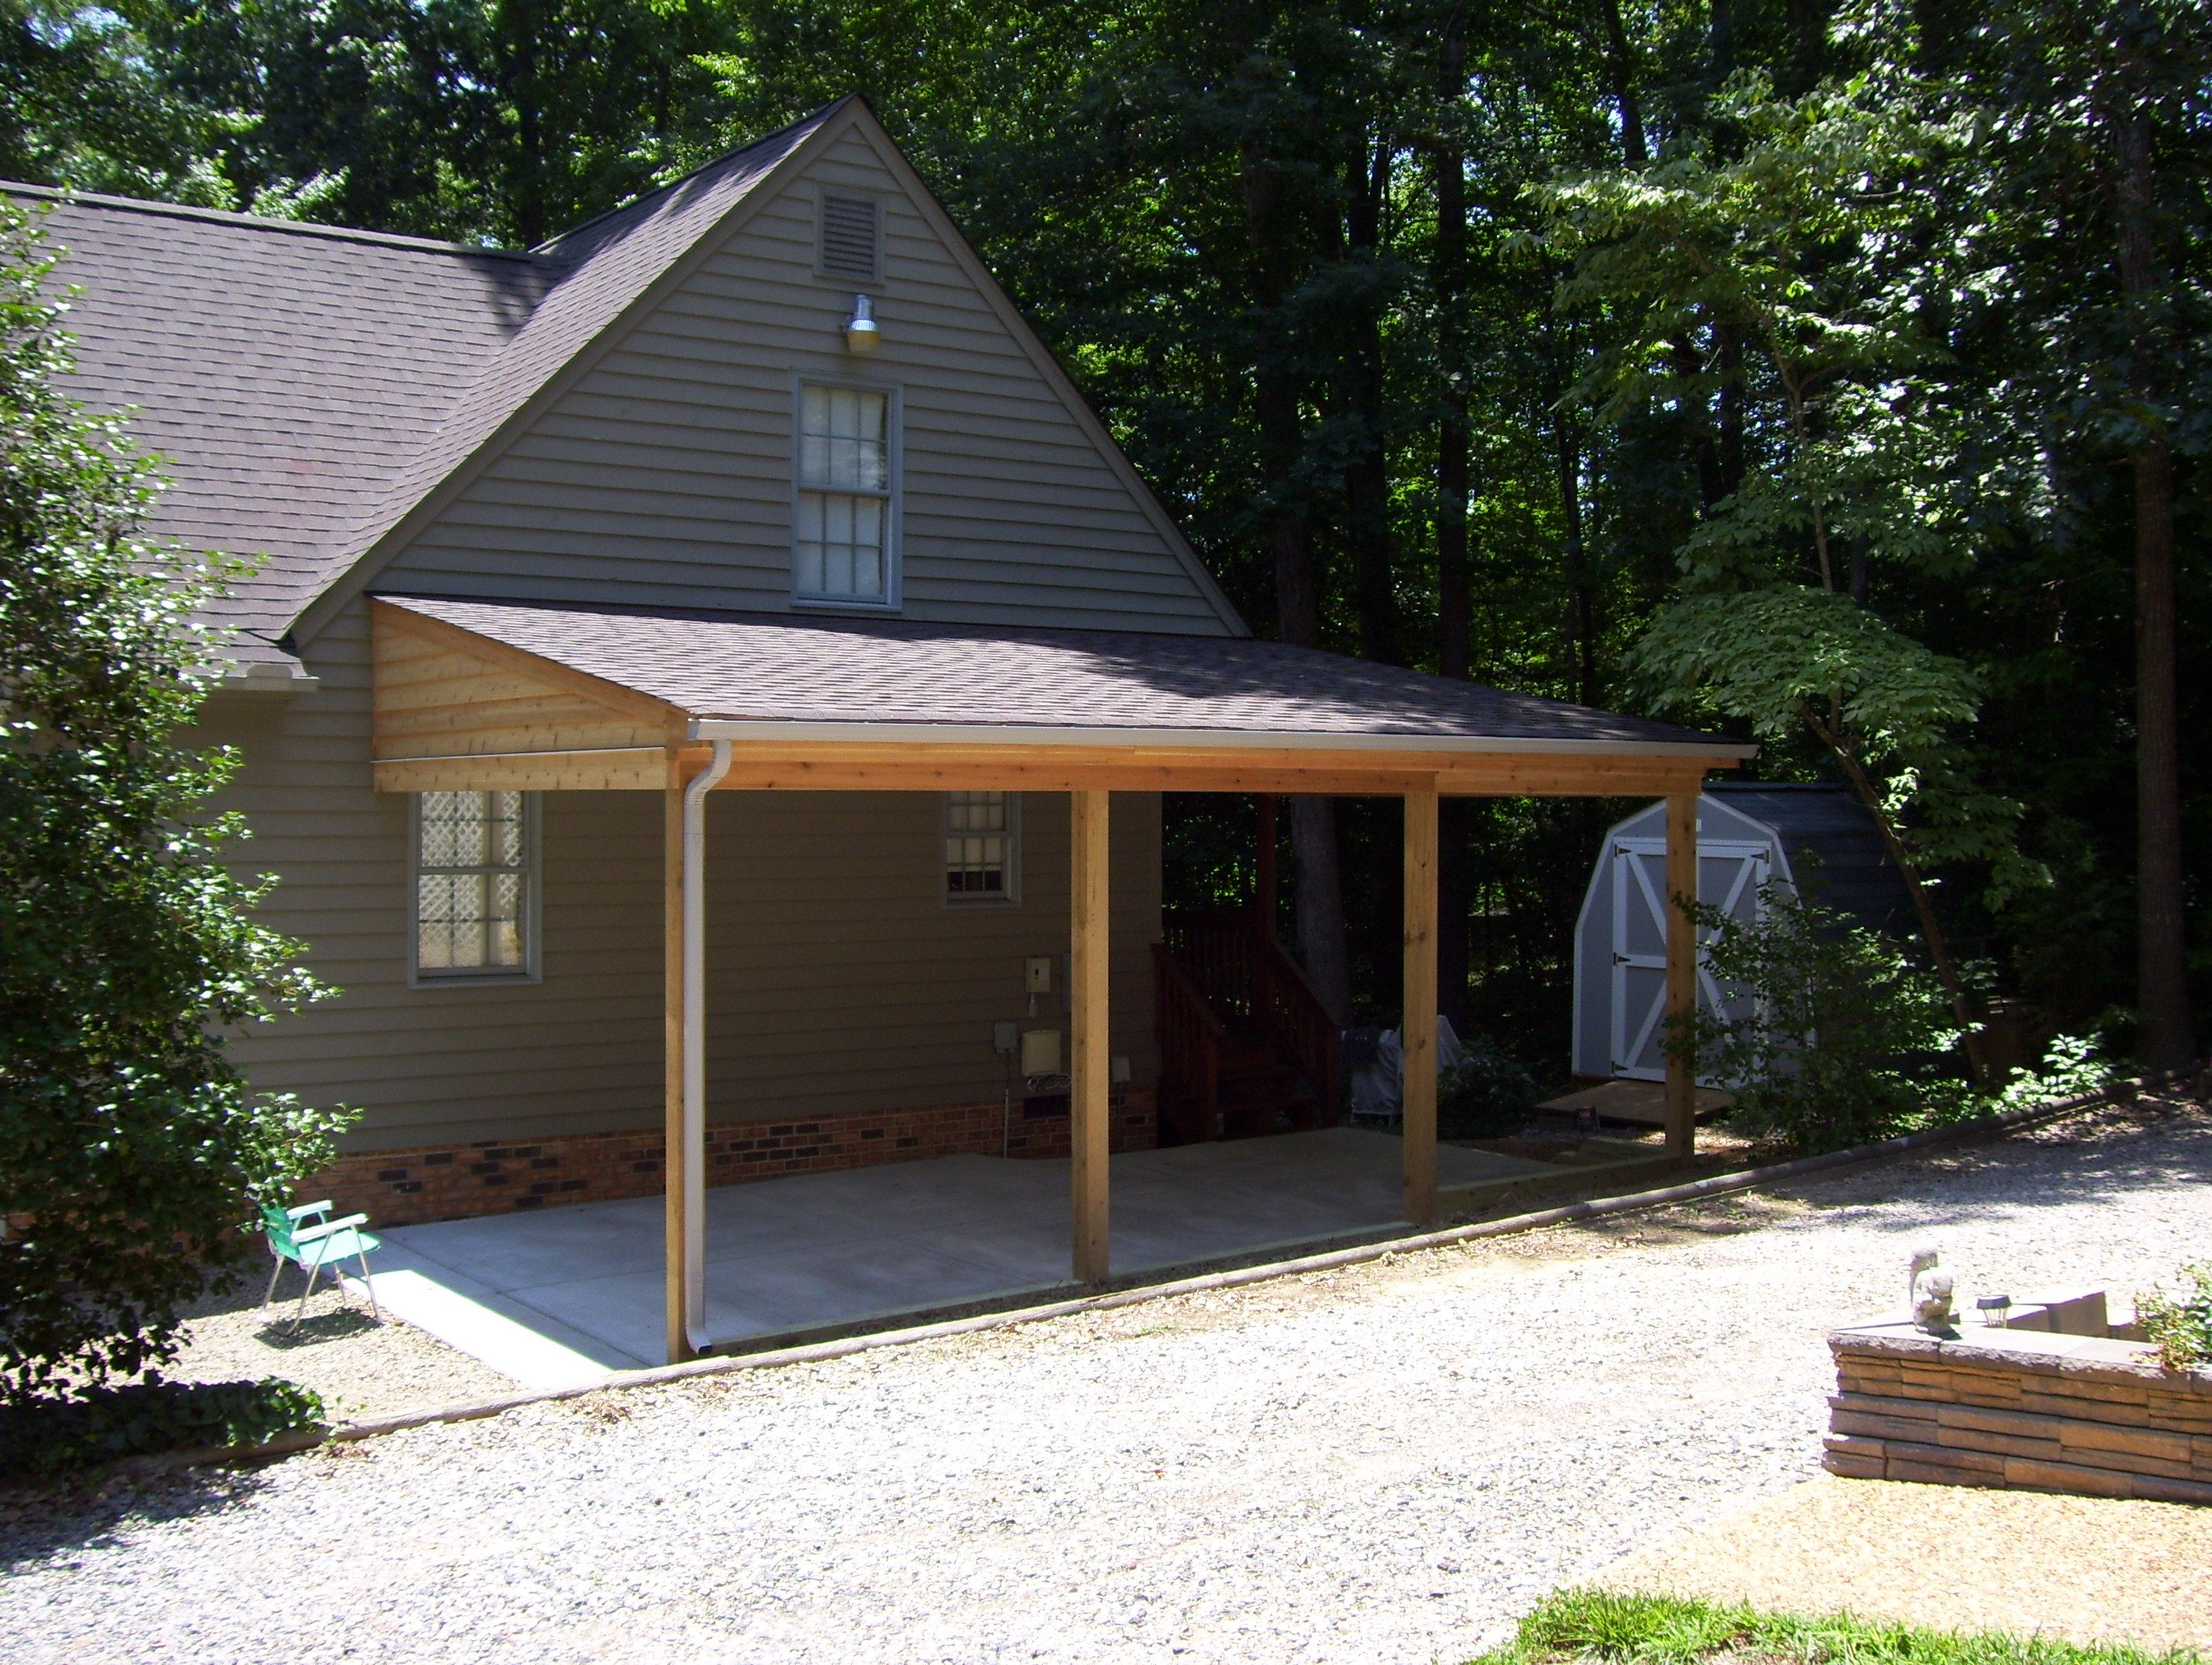 carport attached to side of house google search patios pinterest. Black Bedroom Furniture Sets. Home Design Ideas